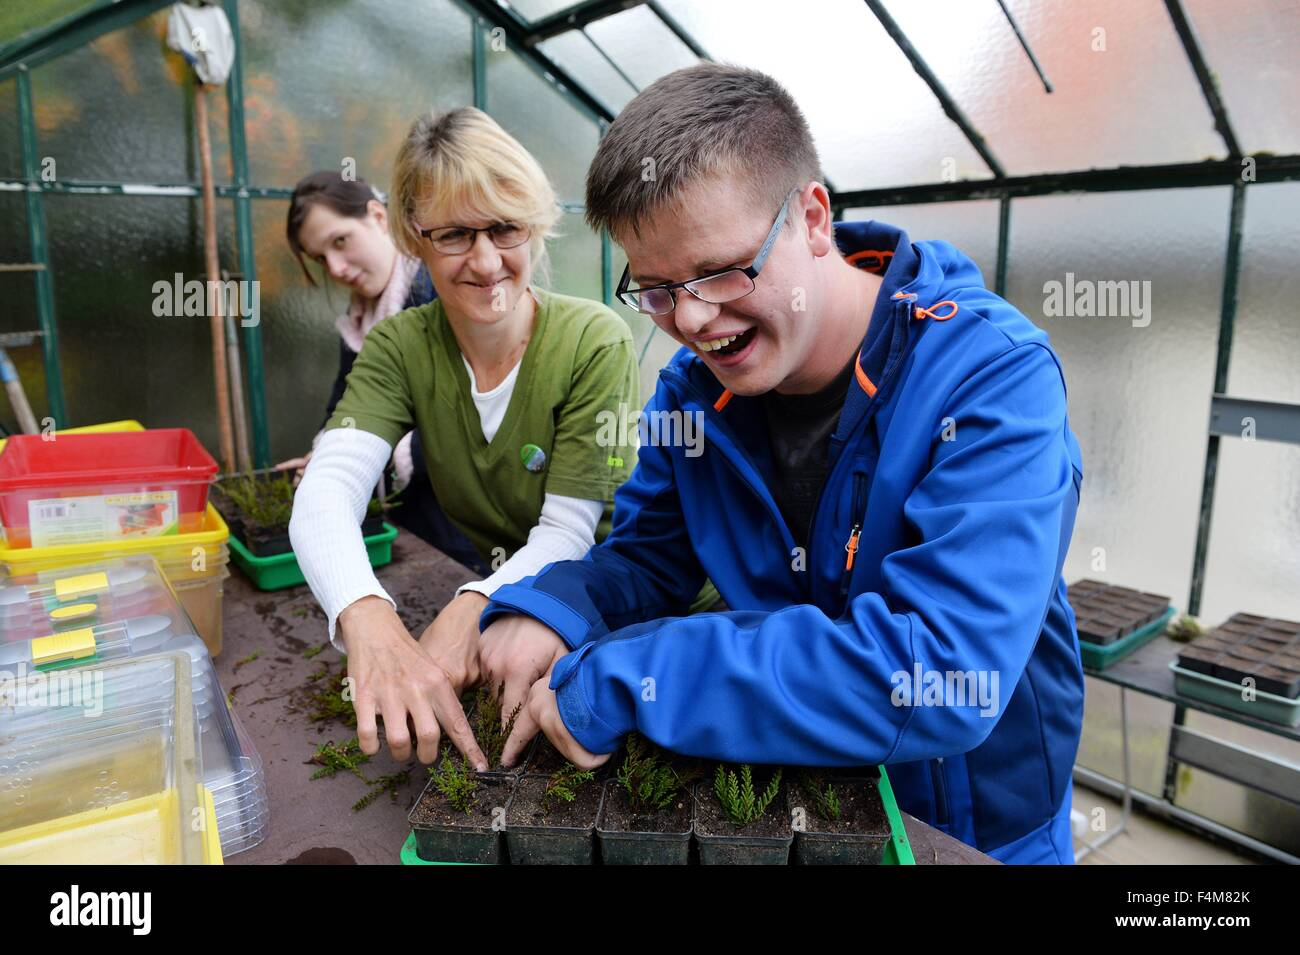 Handicapped  man Christoph Schmidt (right) works together with a non handicapped woman in a garden, Germany, city Stock Photo